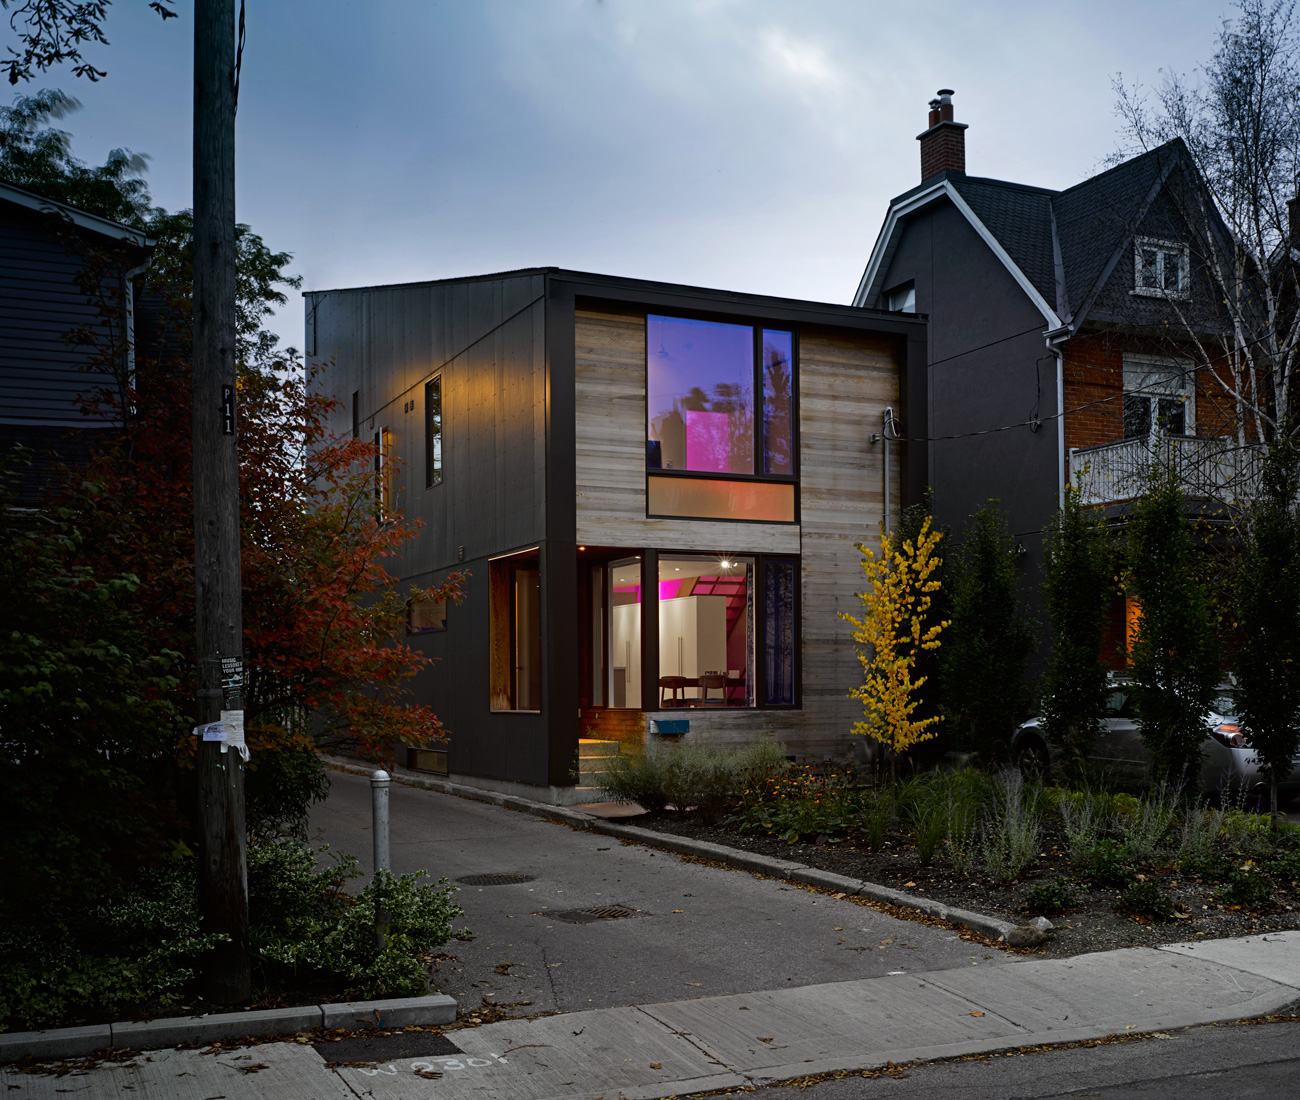 Colourful LEDs light up the little Hardie-board and cedar-clad home's clerestory.